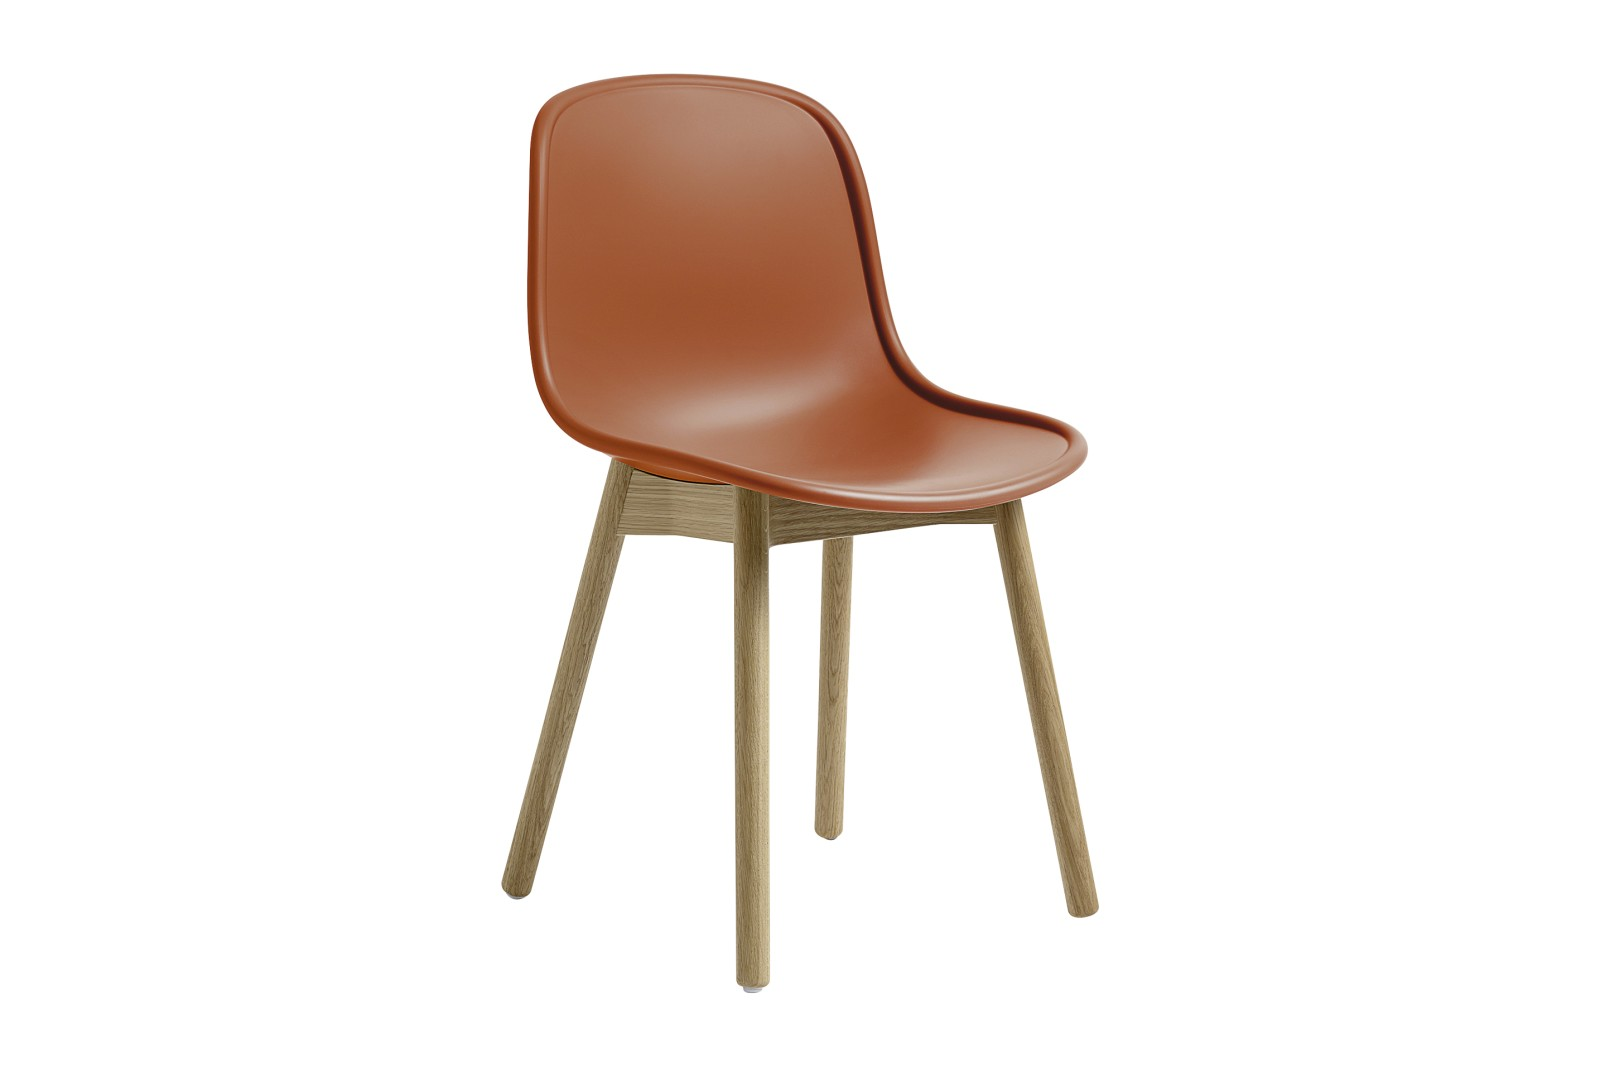 Neu 13 Dining Chair Orange shell, Matt lacquered solid oak frame